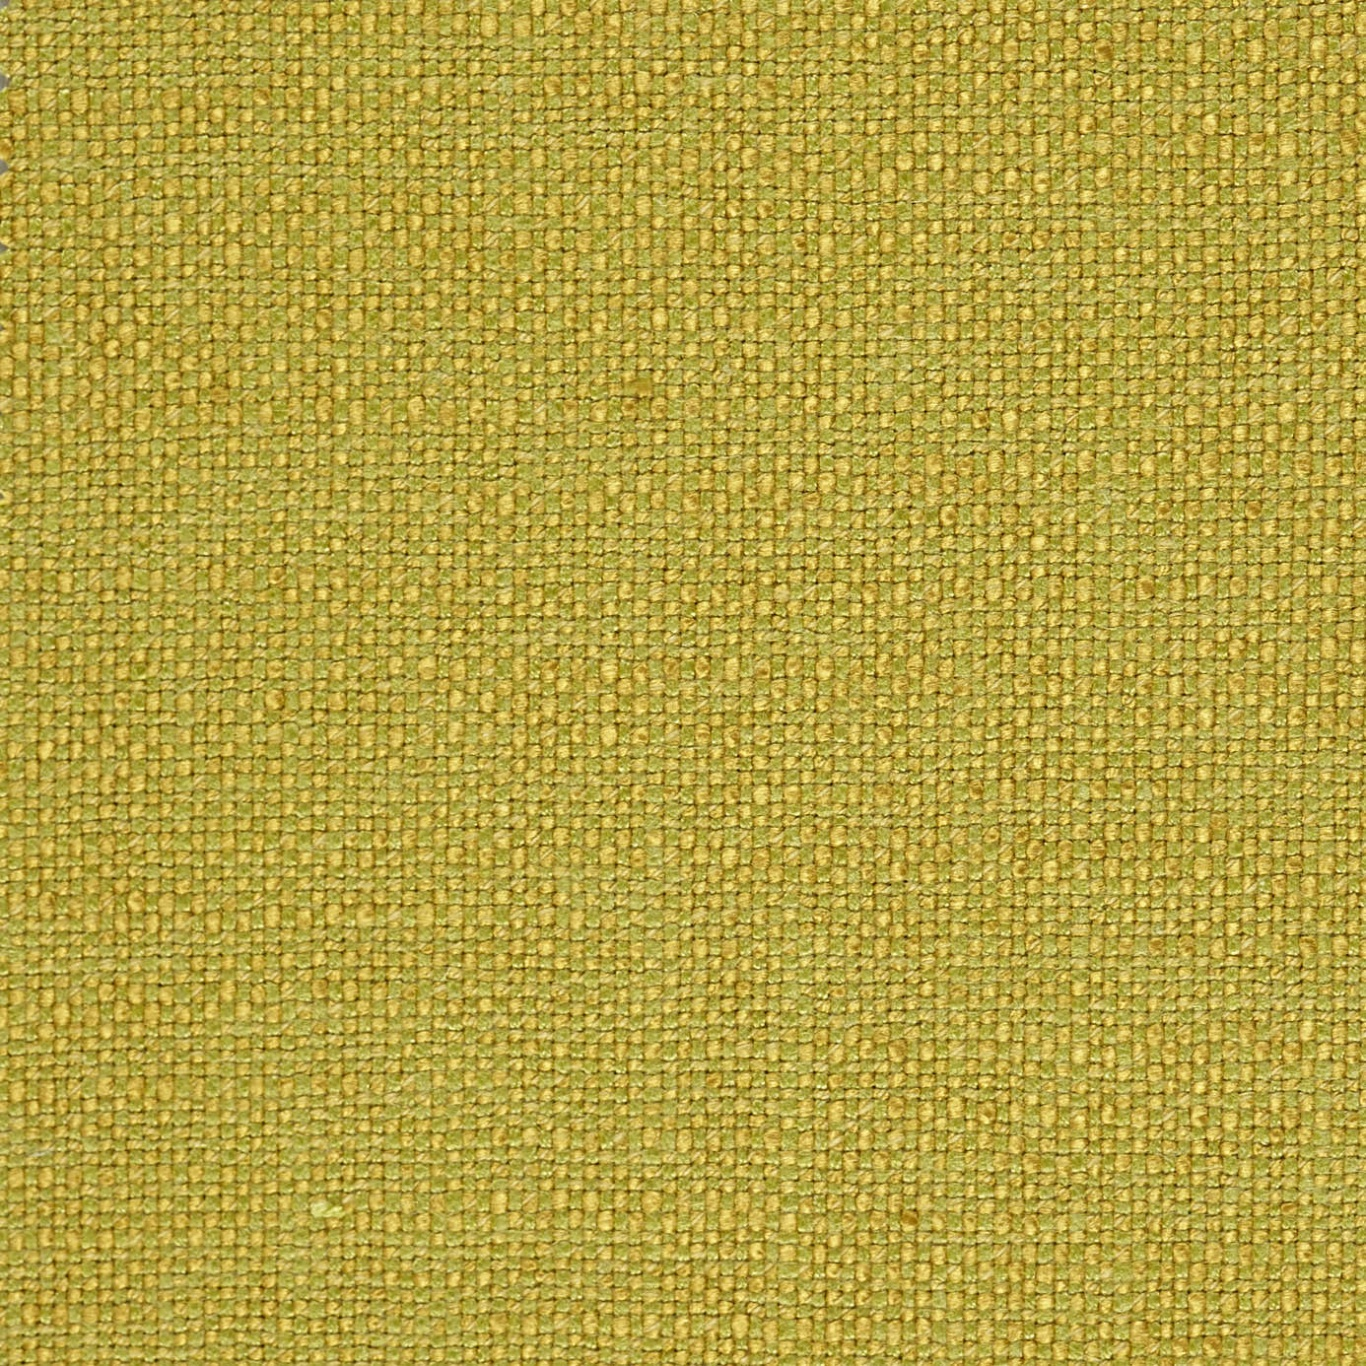 Image of Harlequin Fission Gooseberry Fabric 440018